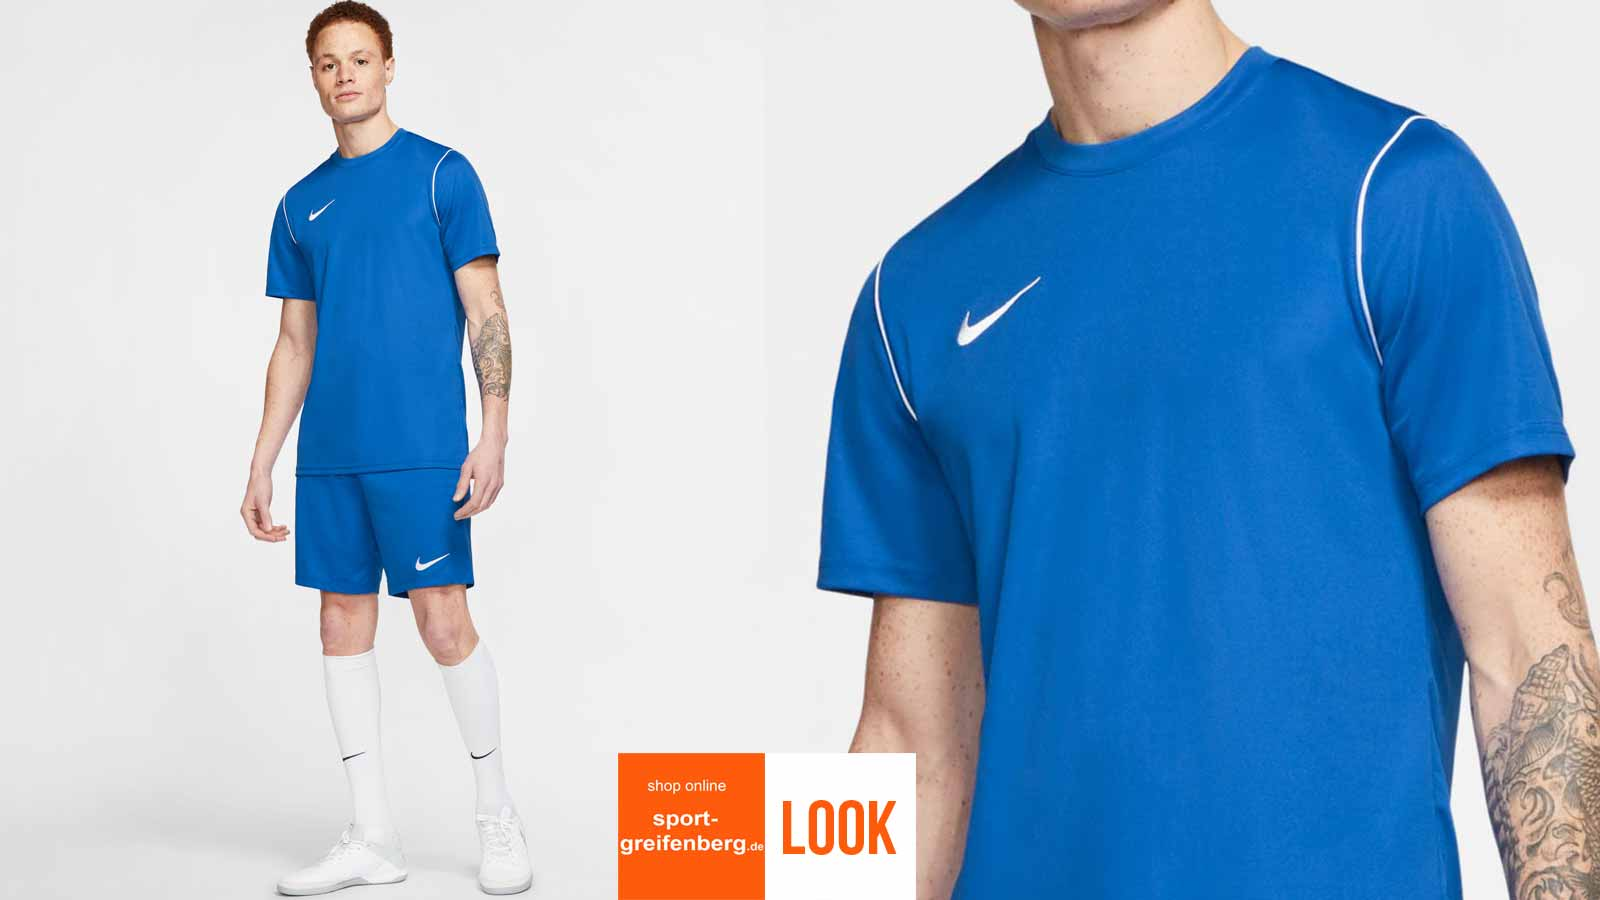 Das Nike Training Outfit Park in blau